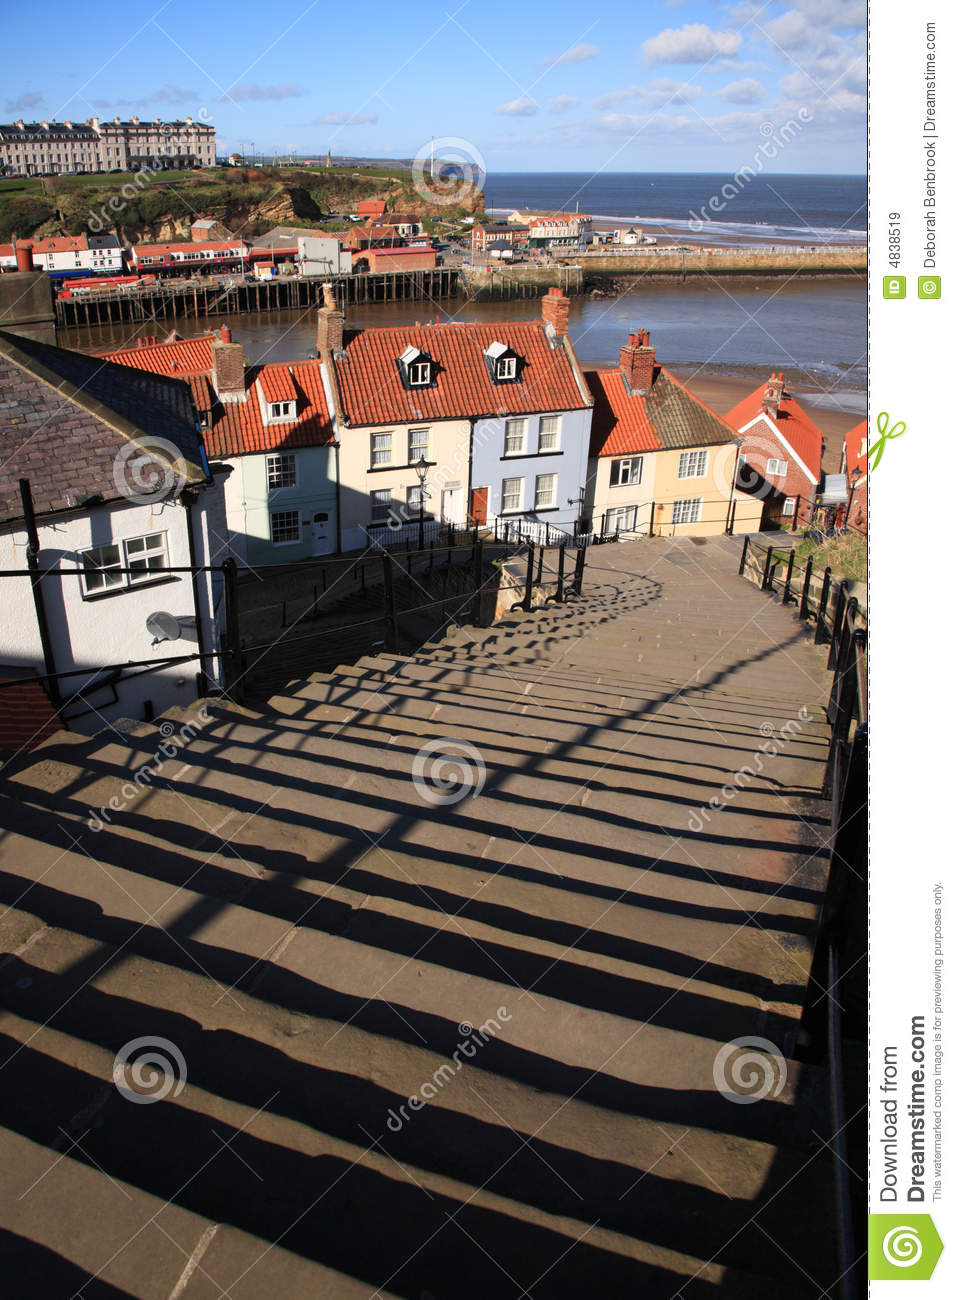 99 steps at Whitby